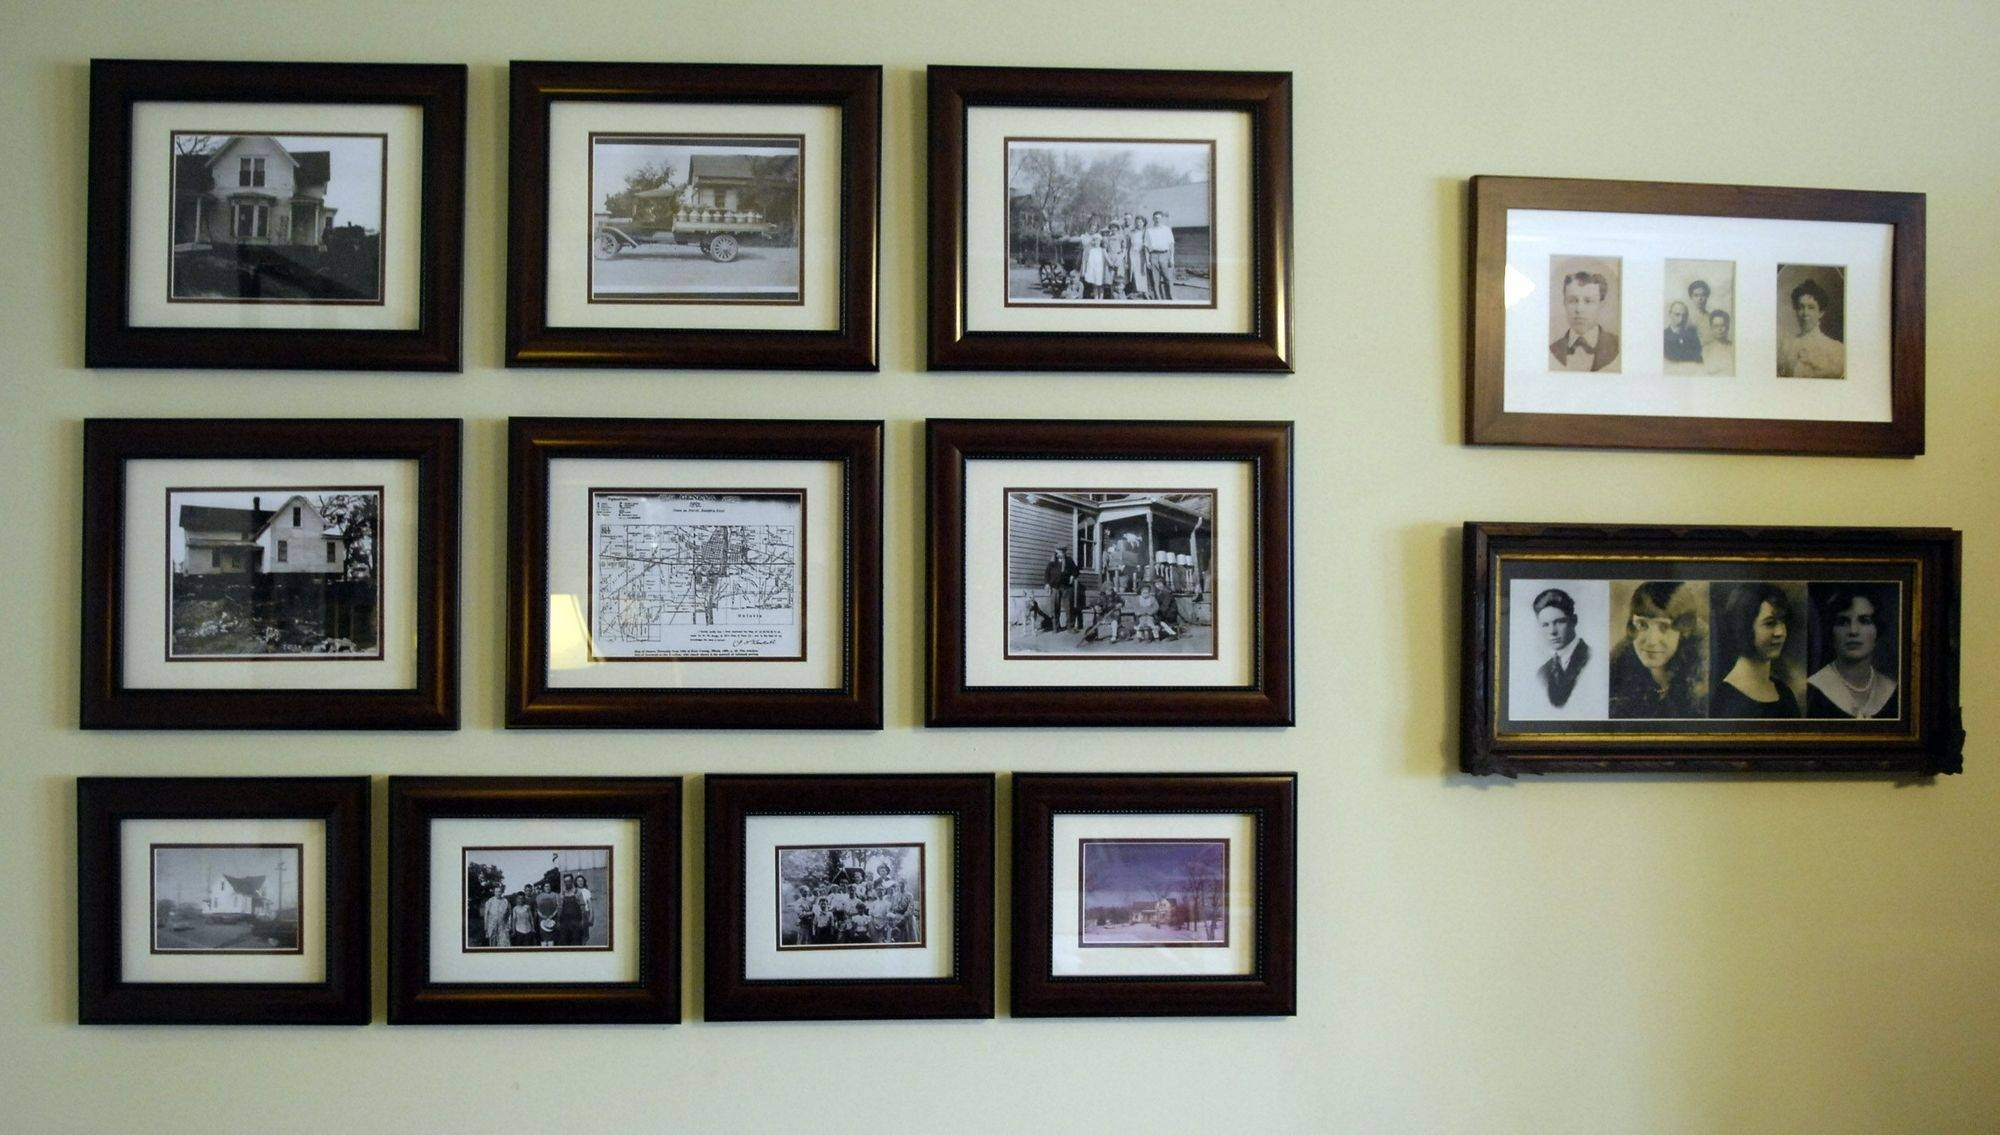 Adam Gibbons is a history teacher and genealogy buff and has filled his historic home with pictures from its past. The McKinley-Adams house at Kirk and Hill roads in Geneva has been designated a Kane County historical landmark.